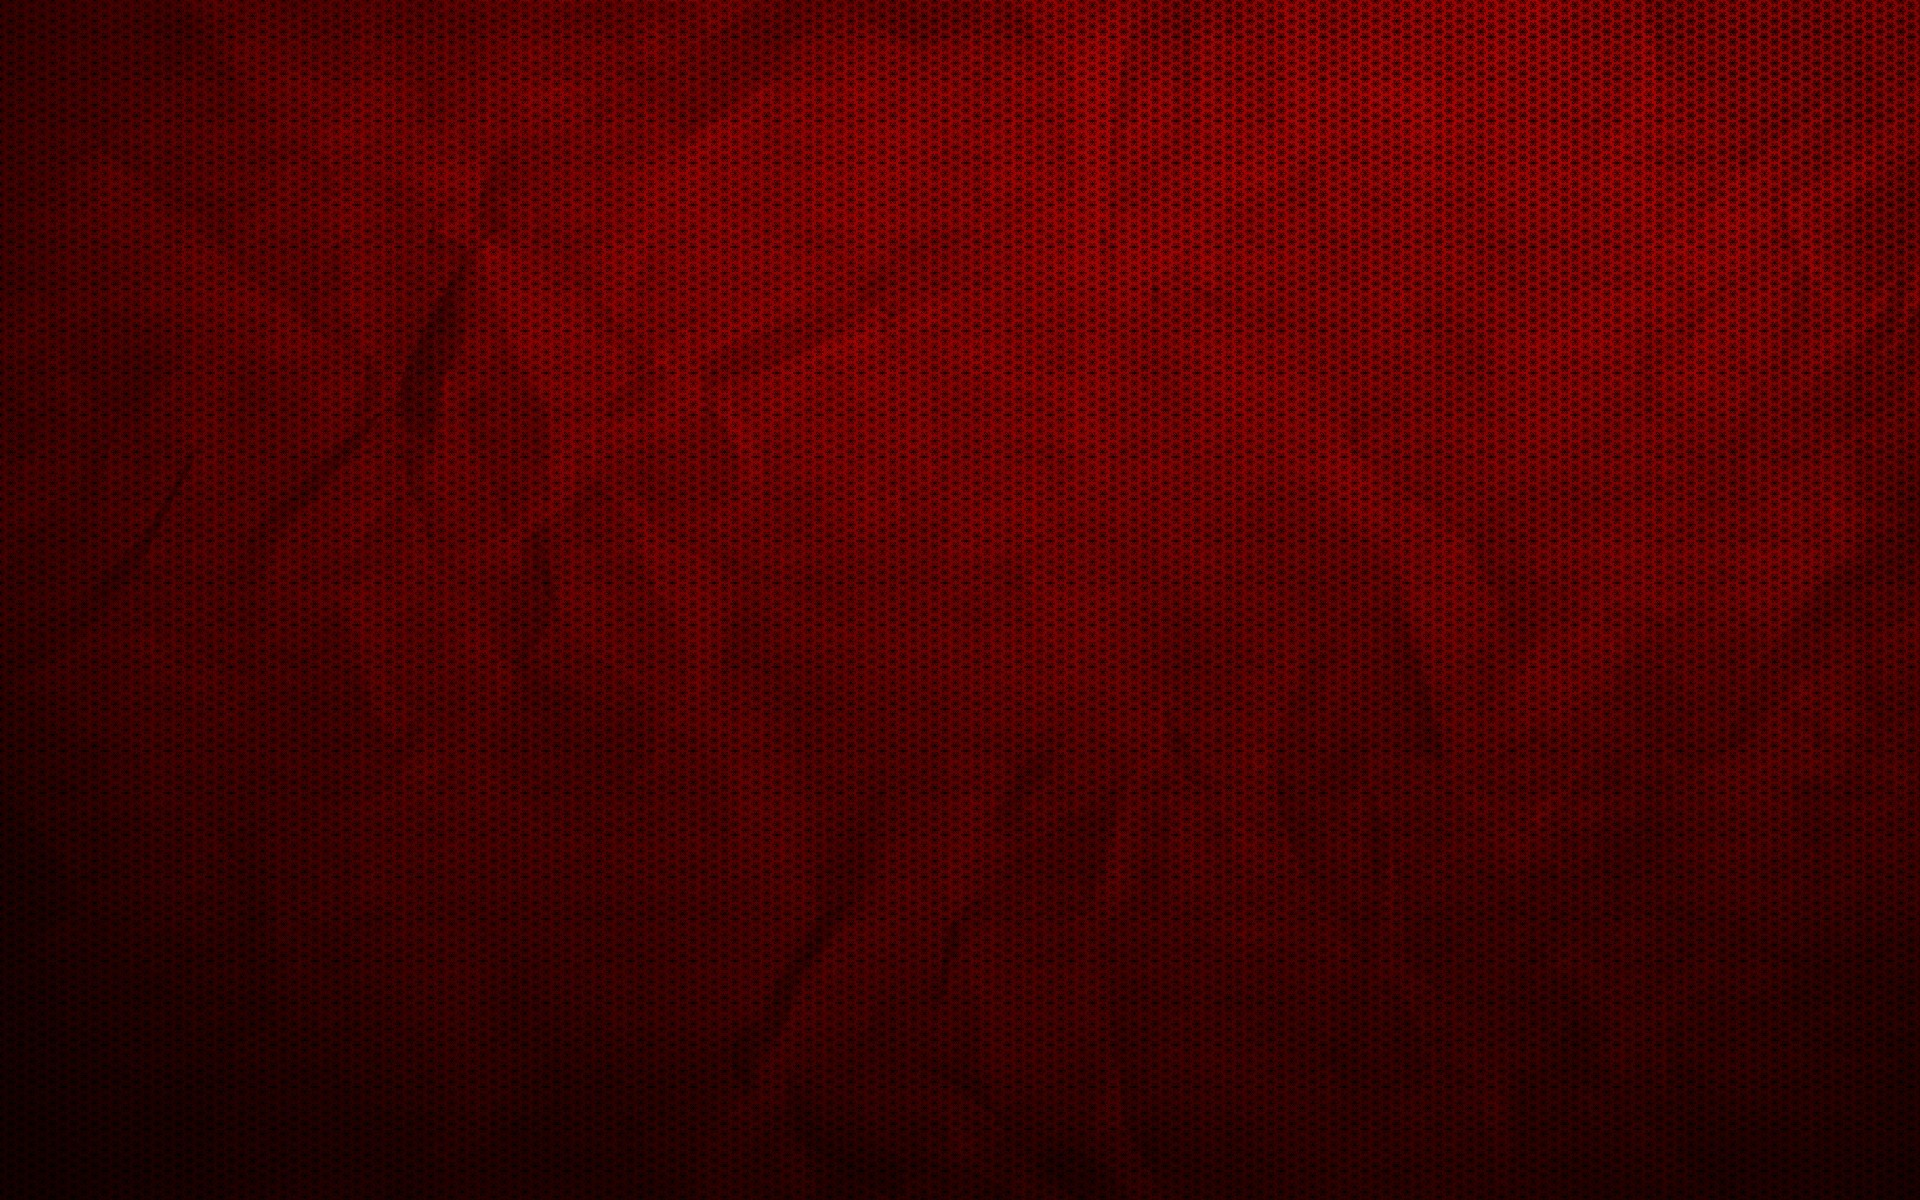 Background images with flowers hd plain red